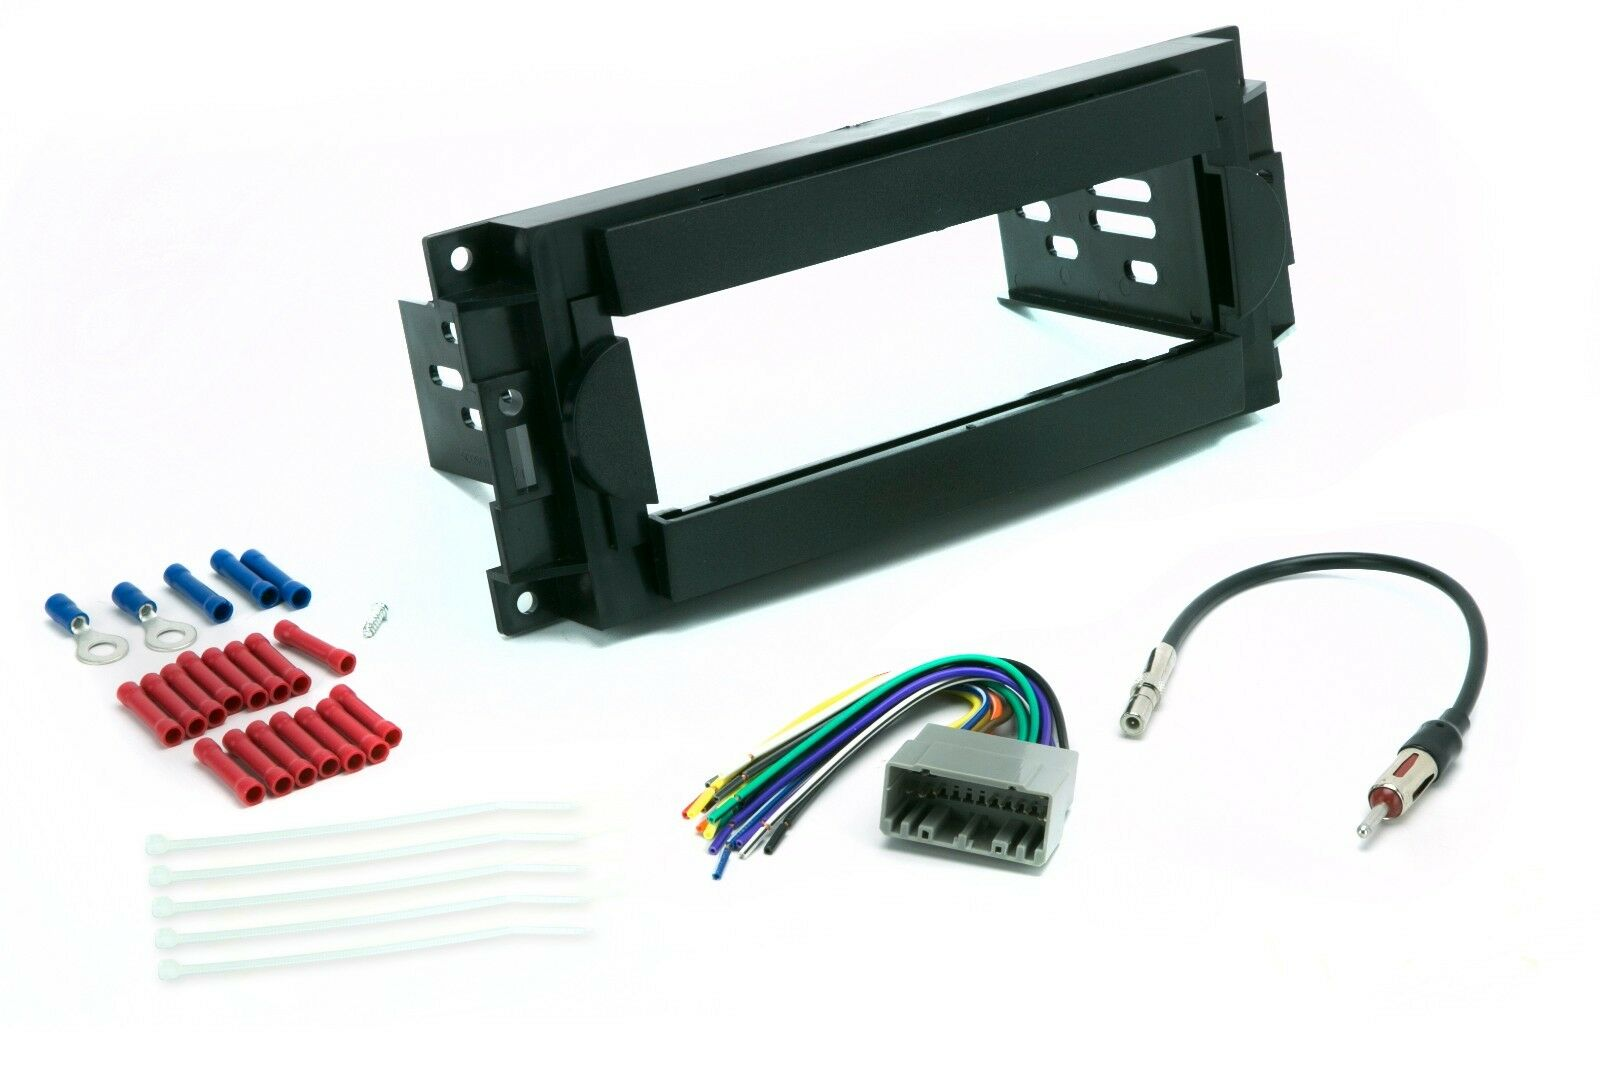 Single Din Dash Kit For Radio Stereo Install Wire Harness Antenna Car Cd Player Mount Wiring Adapter 1 Of 1free Shipping See More